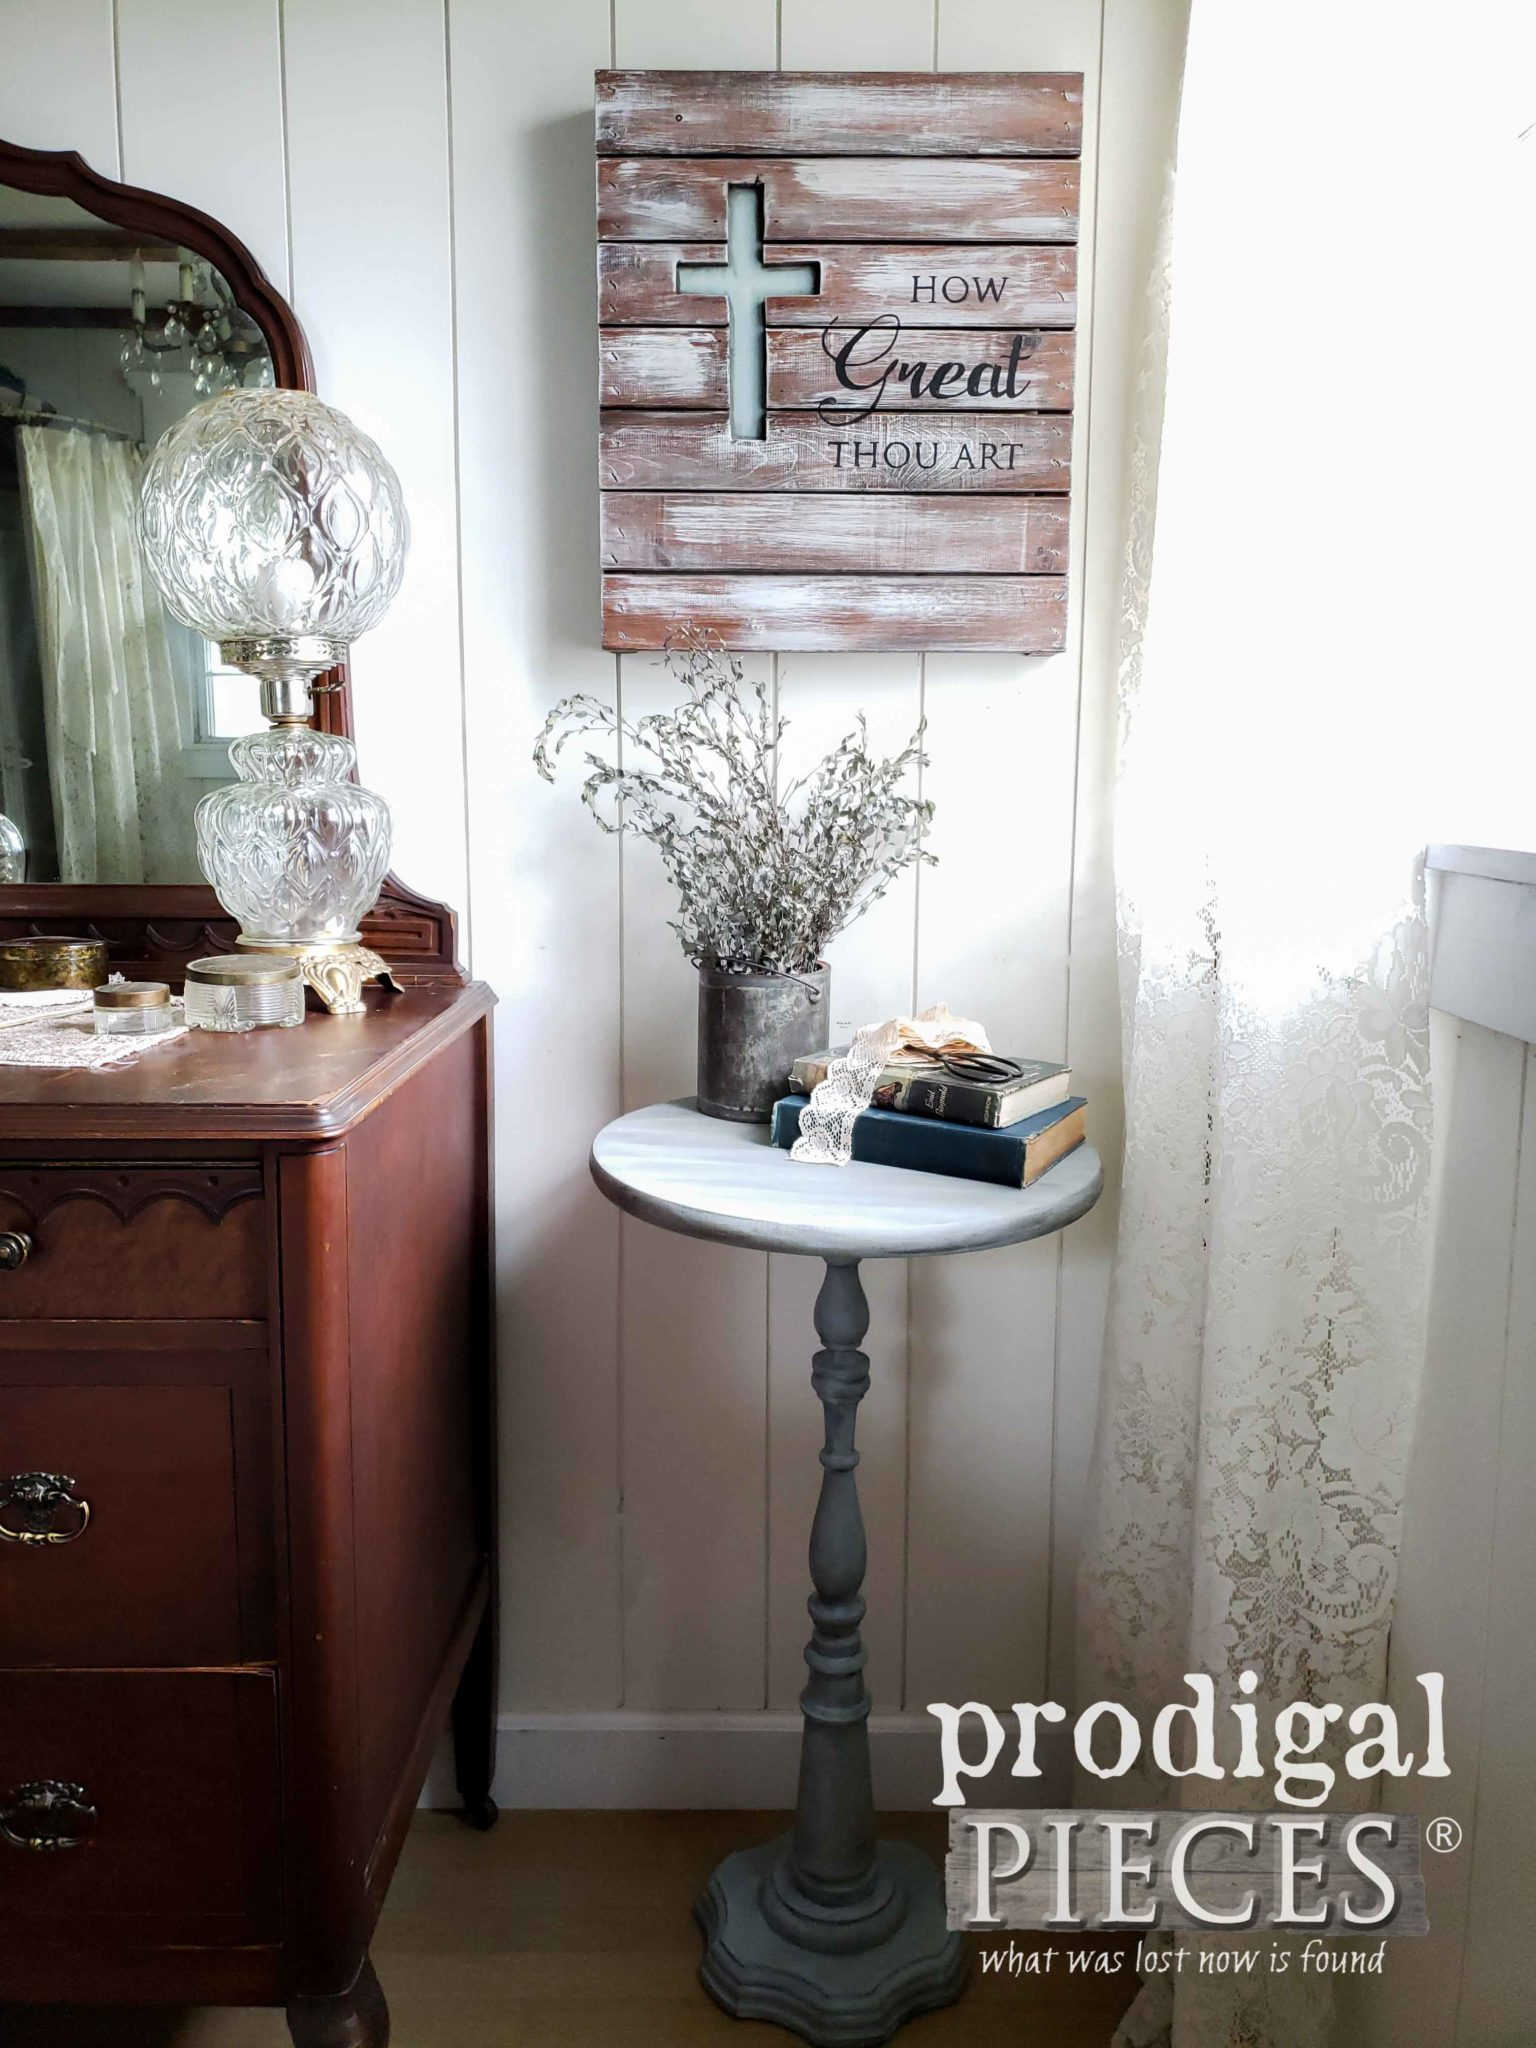 DIY Farmhouse Vignette Created from Thrifted Finds by Larissa of Prodigal Pieces | prodigalpieces.com